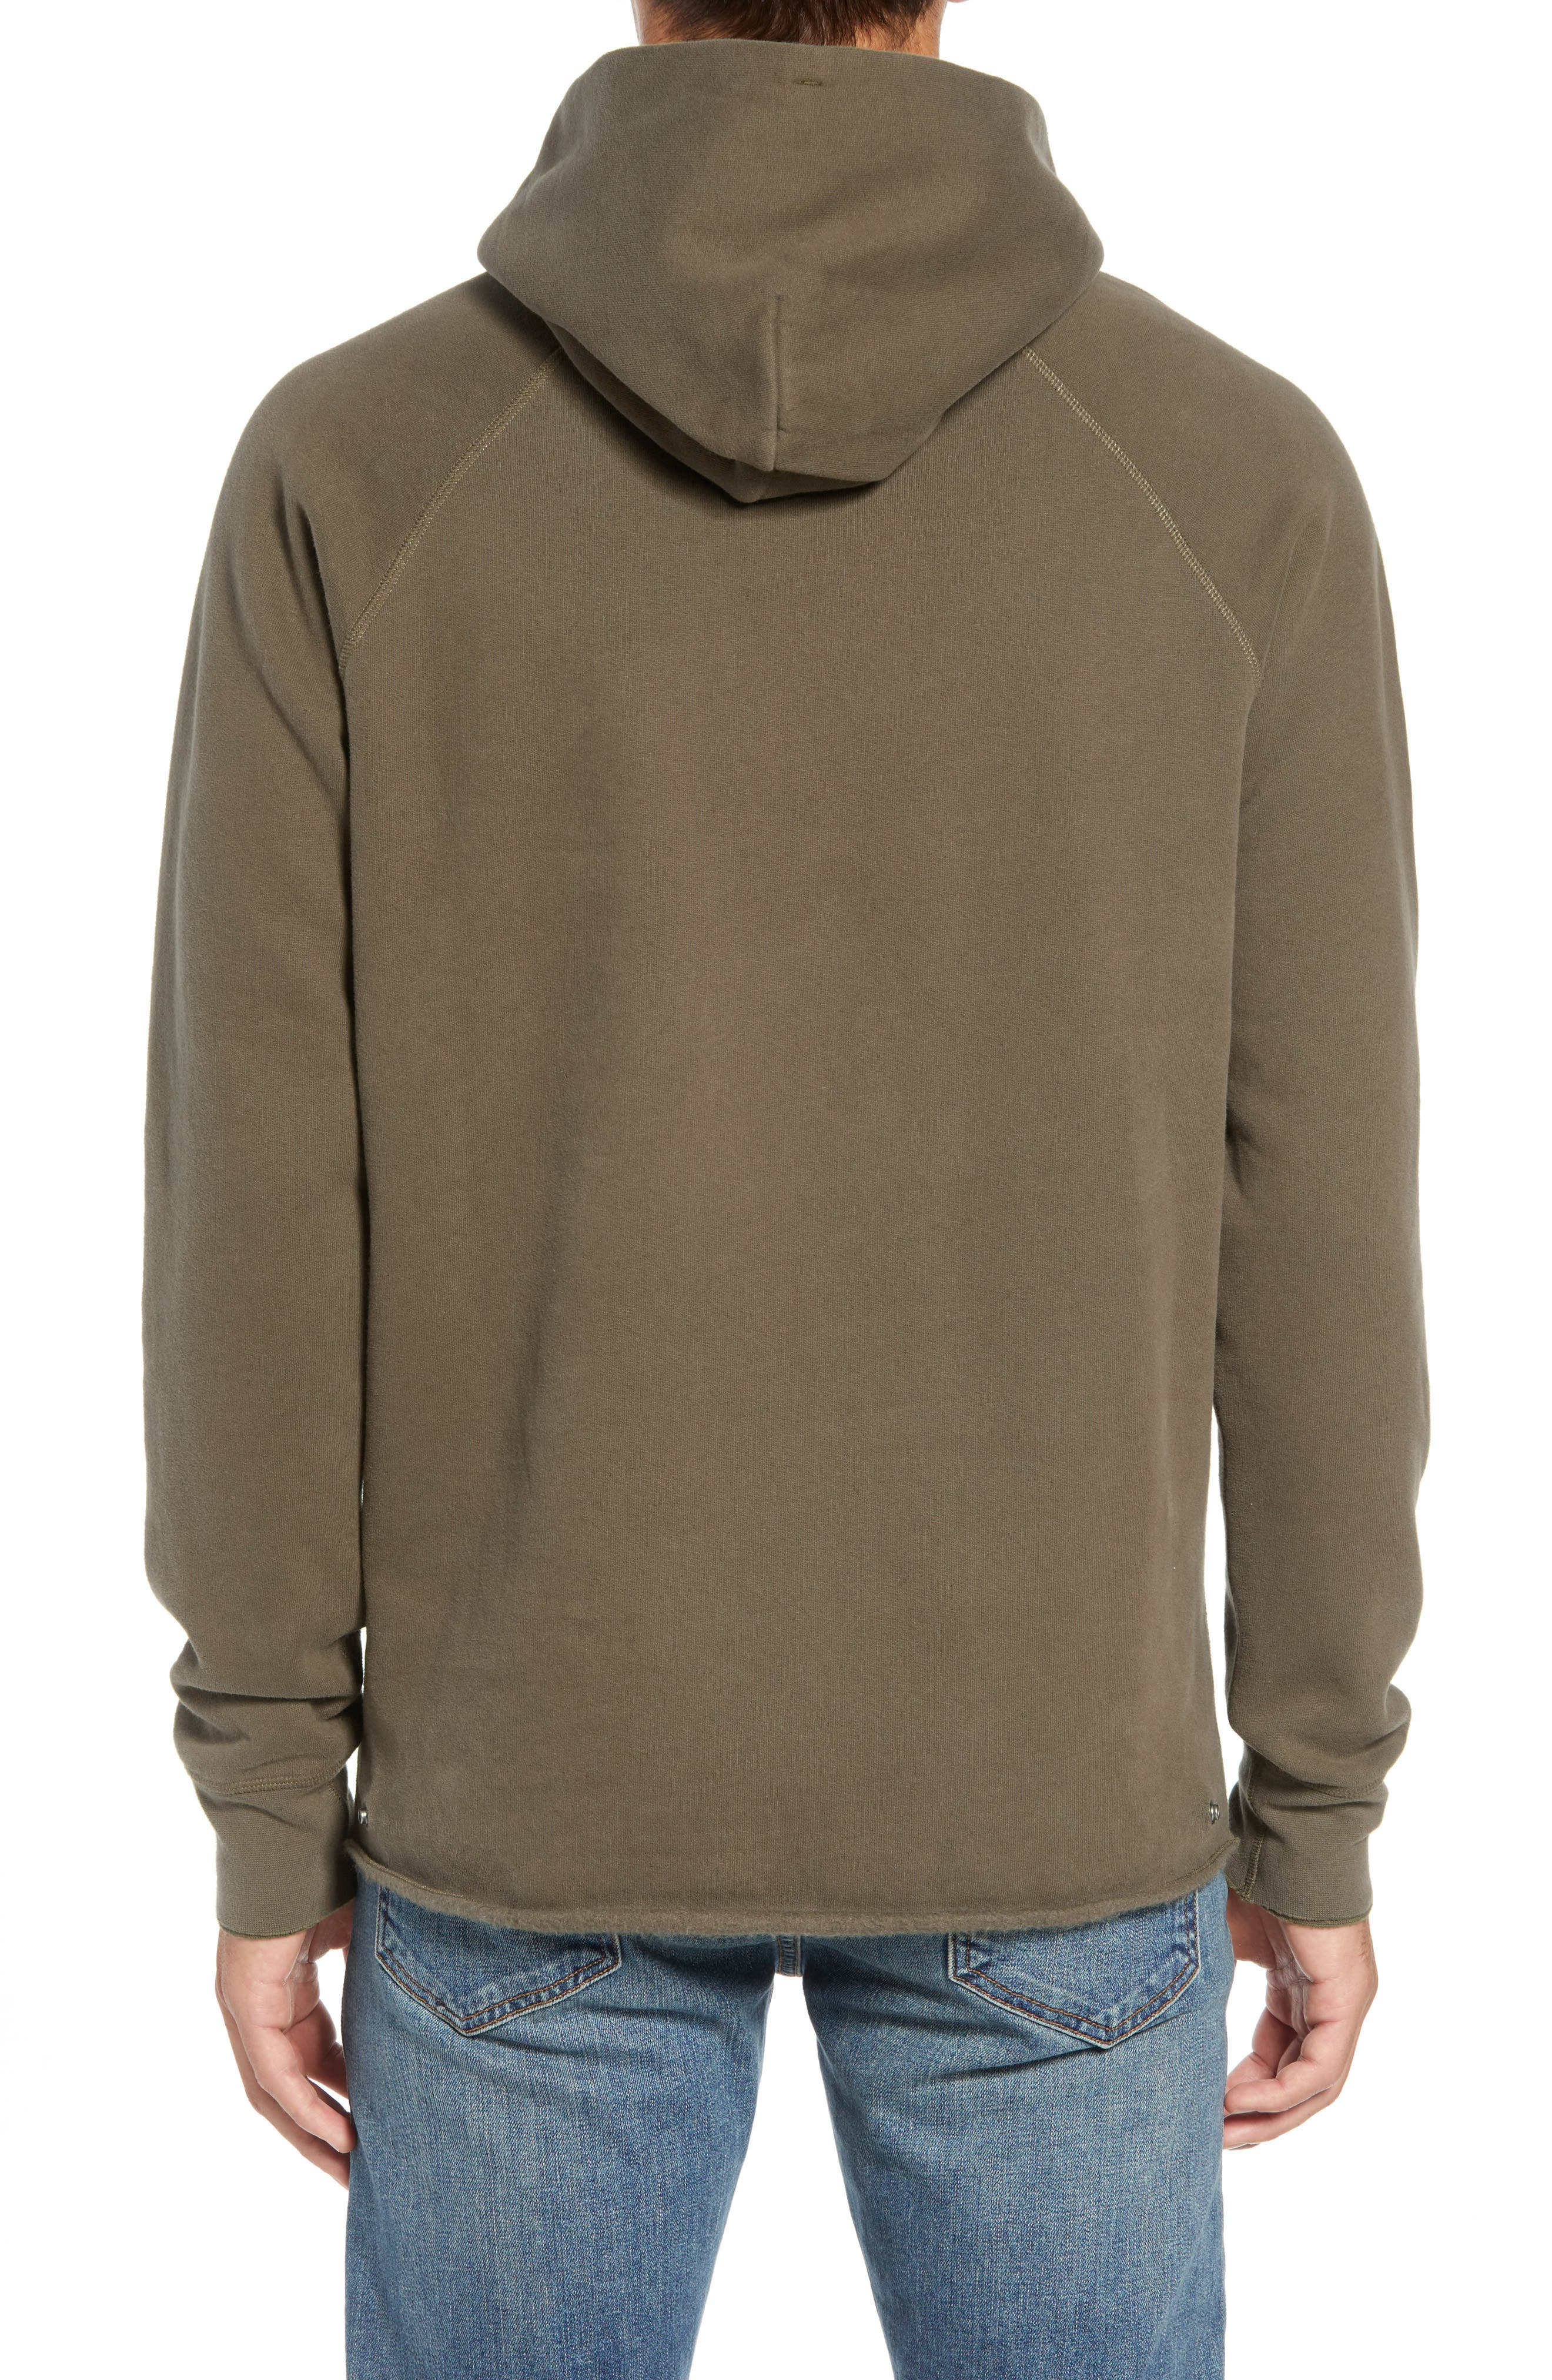 LEVI'S<SUP>®</SUP> MADE & CRAFTED<SUP>™</SUP>, Unhemmed Regular Fit Hoodie, Alternate thumbnail 2, color, 300